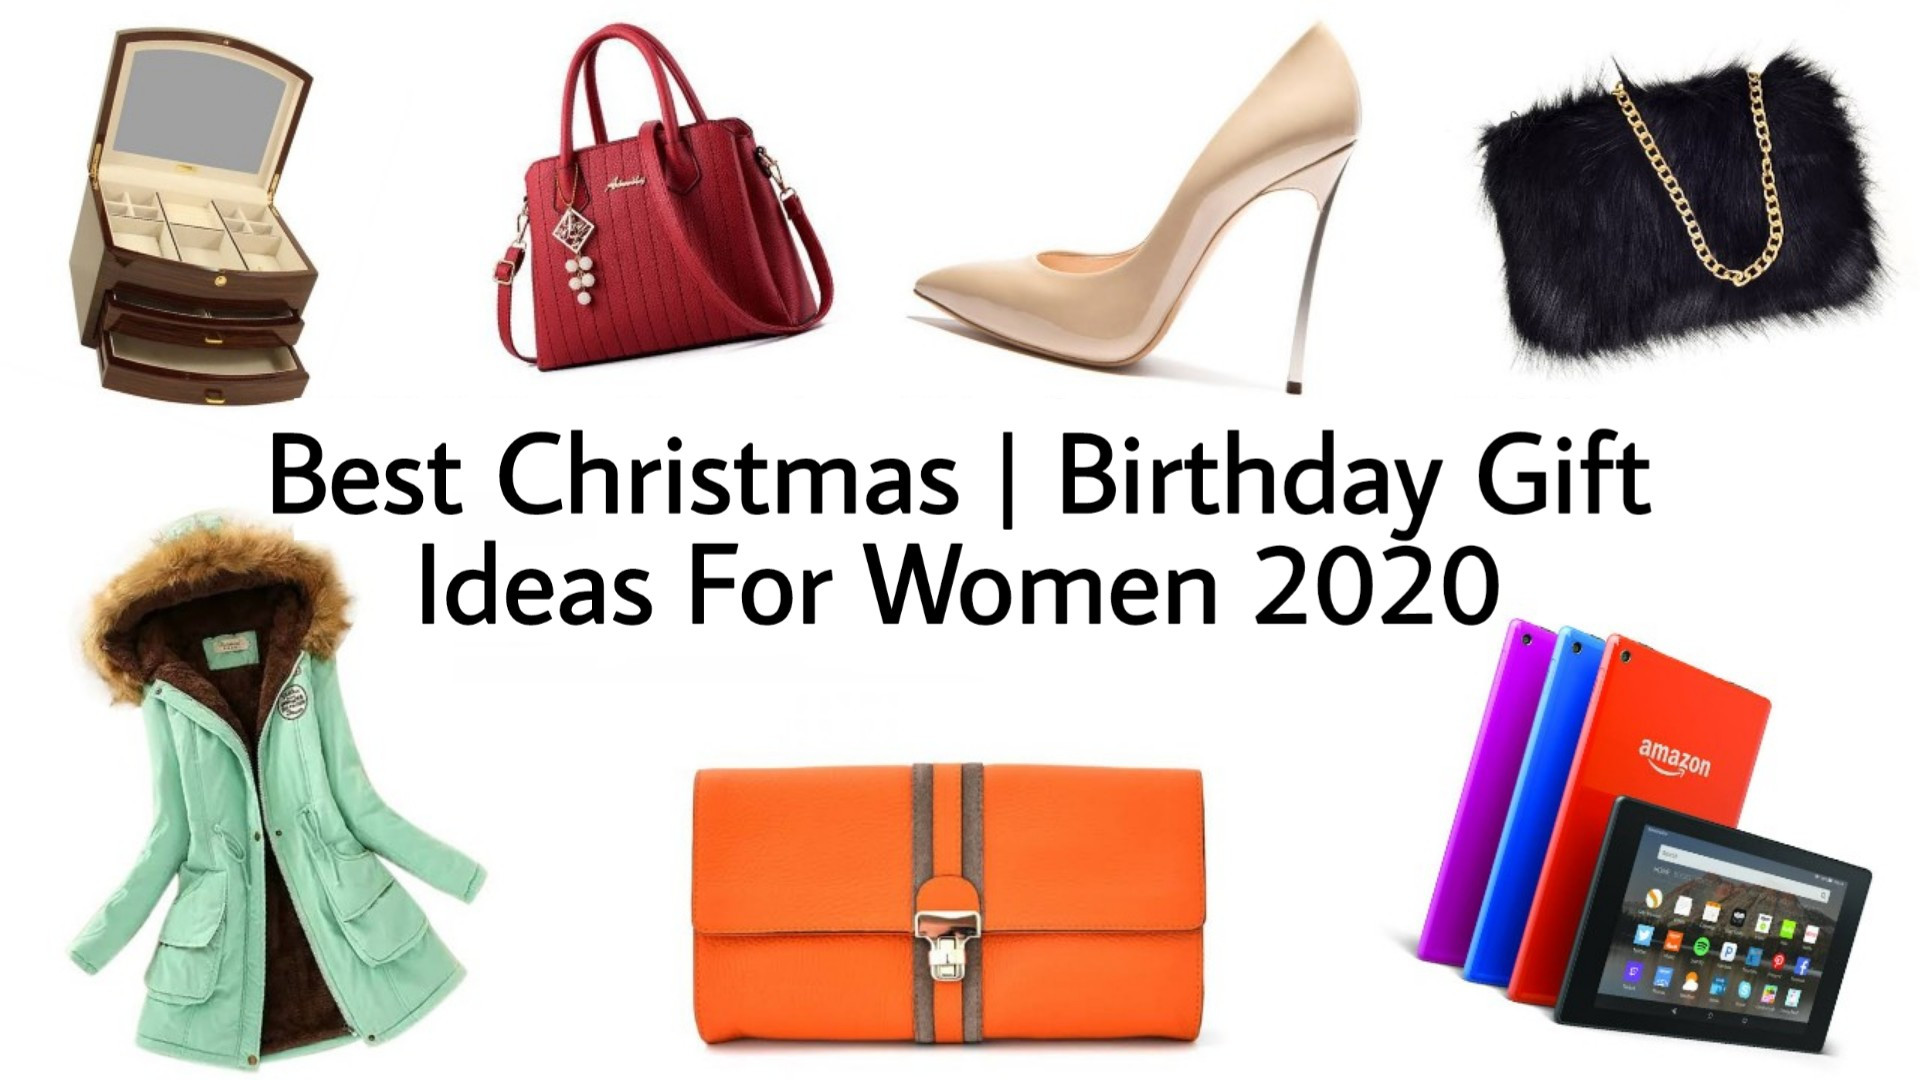 Top Christmas Gift Ideas 2020  Best Christmas Gifts for Women 2020